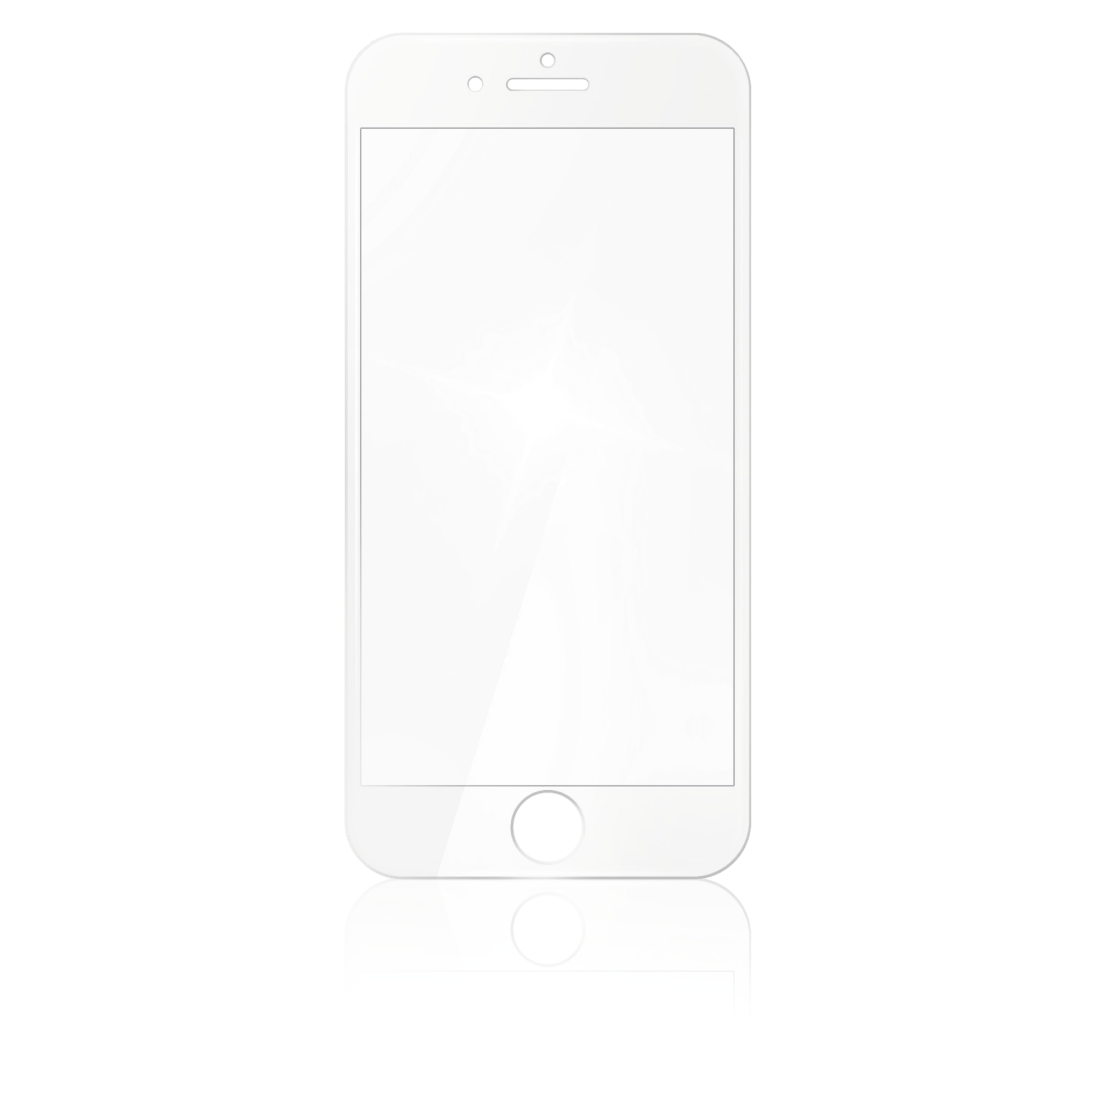 abx2 High-Res Image 2 - Hama, 3D Full Screen Protective Glass for Apple iPhone 6/7/8, white